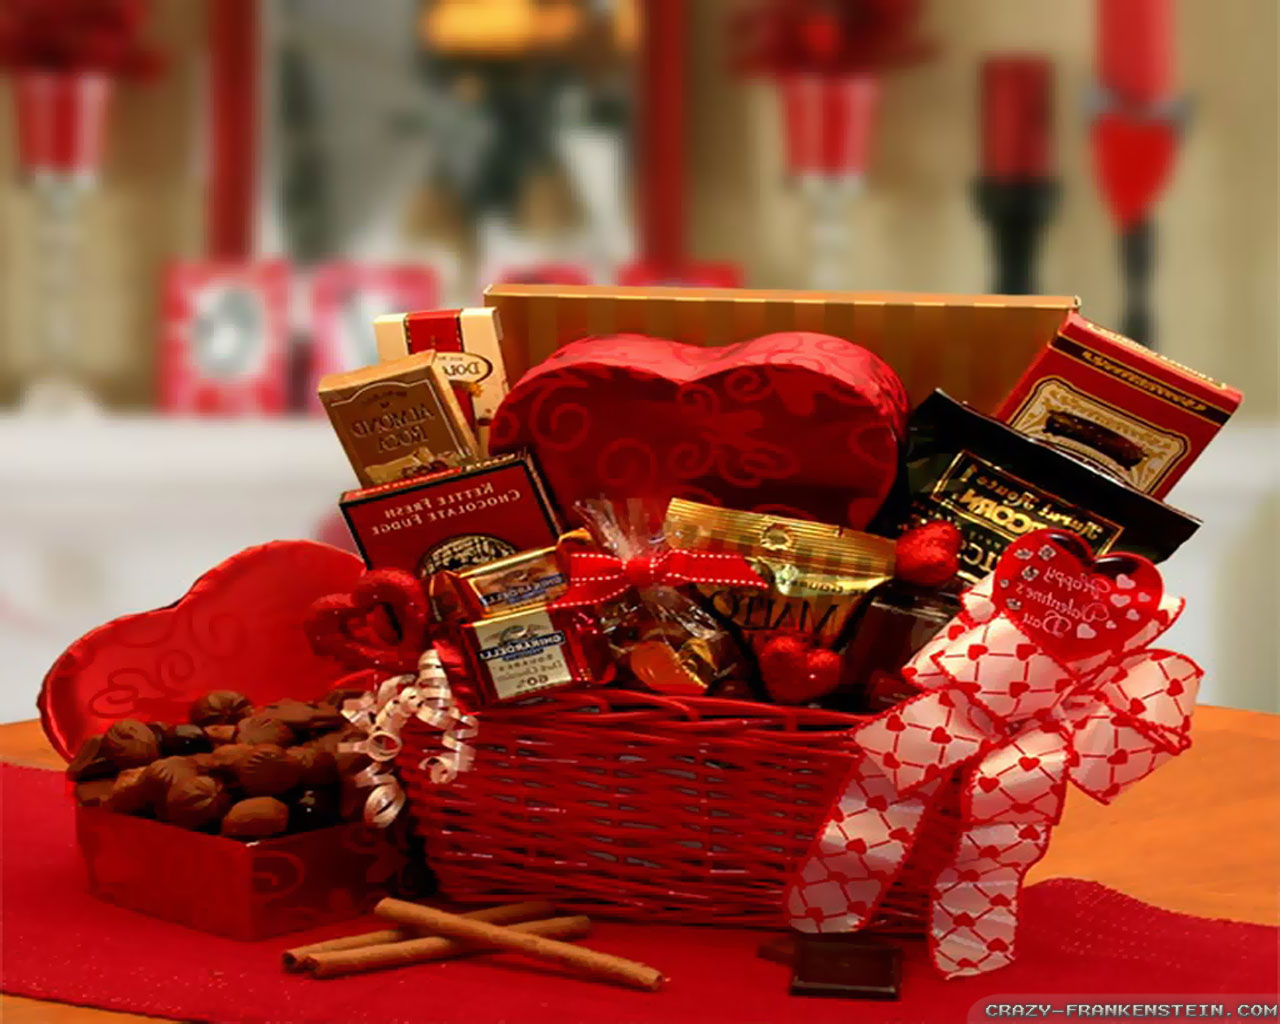 Valentines day gift ideas 2013 - gift for him/her - girls/boys ...